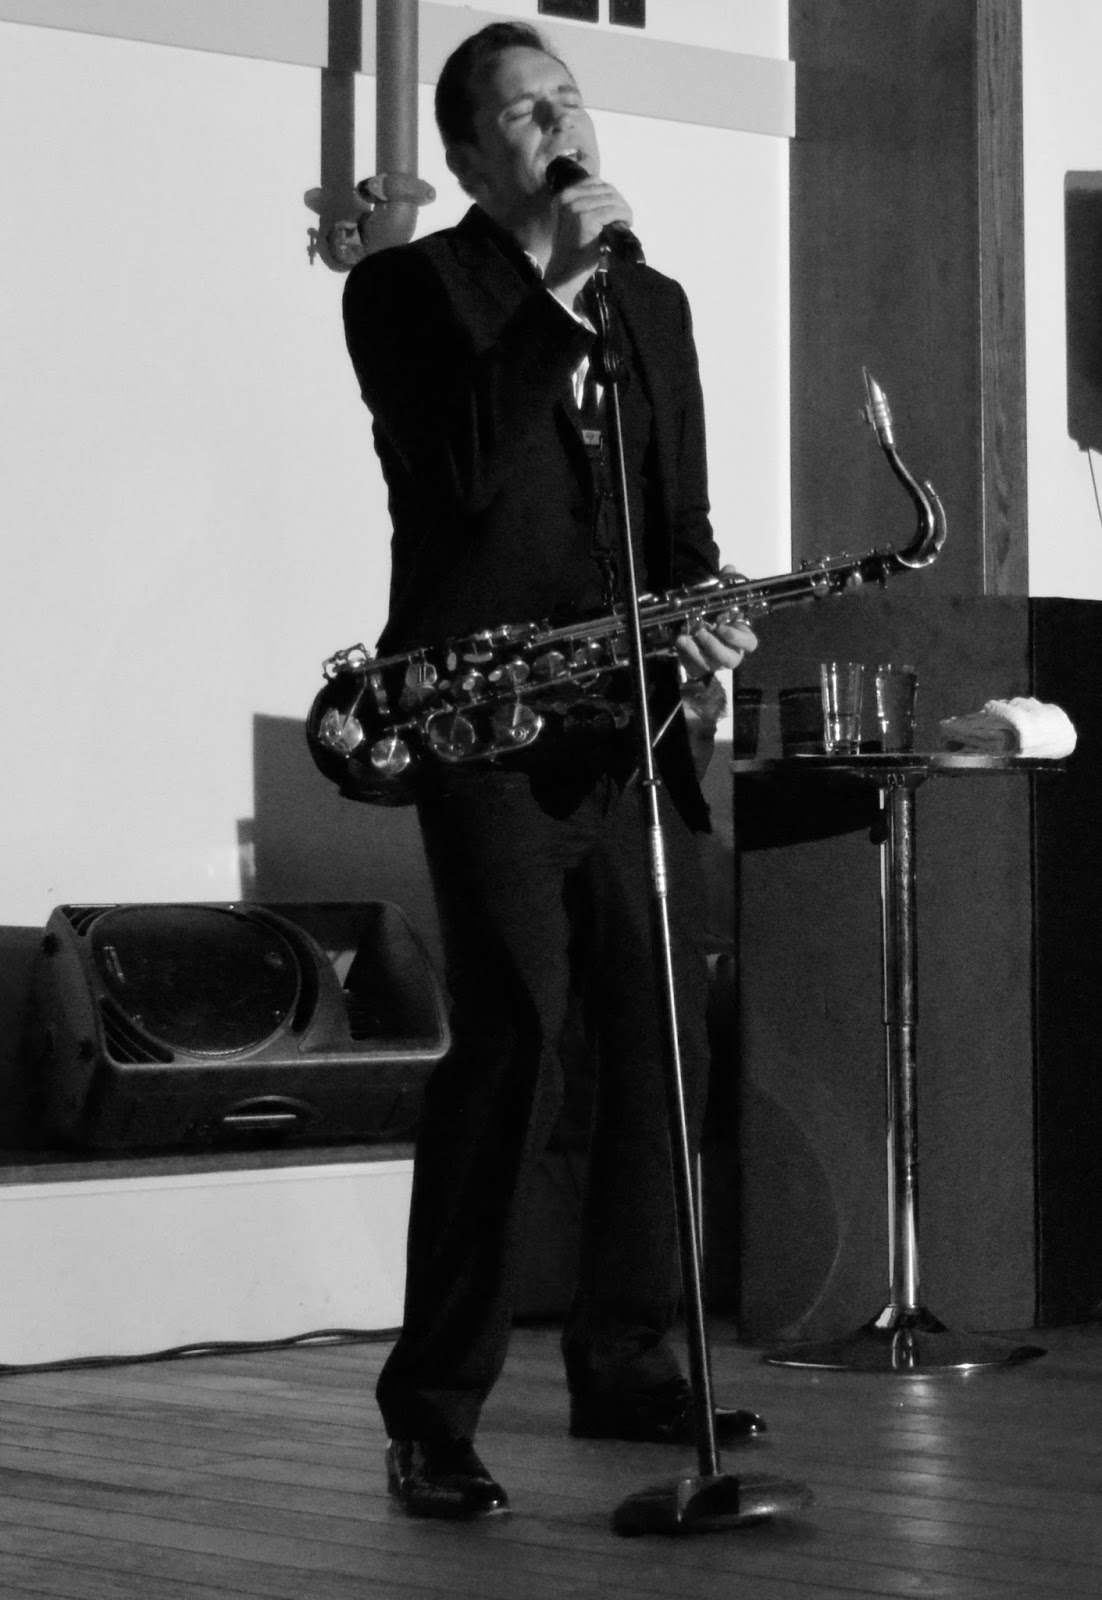 A grown-up date night at Doubletree by Hilton Newcastle Airport with a night of swing and sax with Jason Isaacs in the function room.  - jason singing